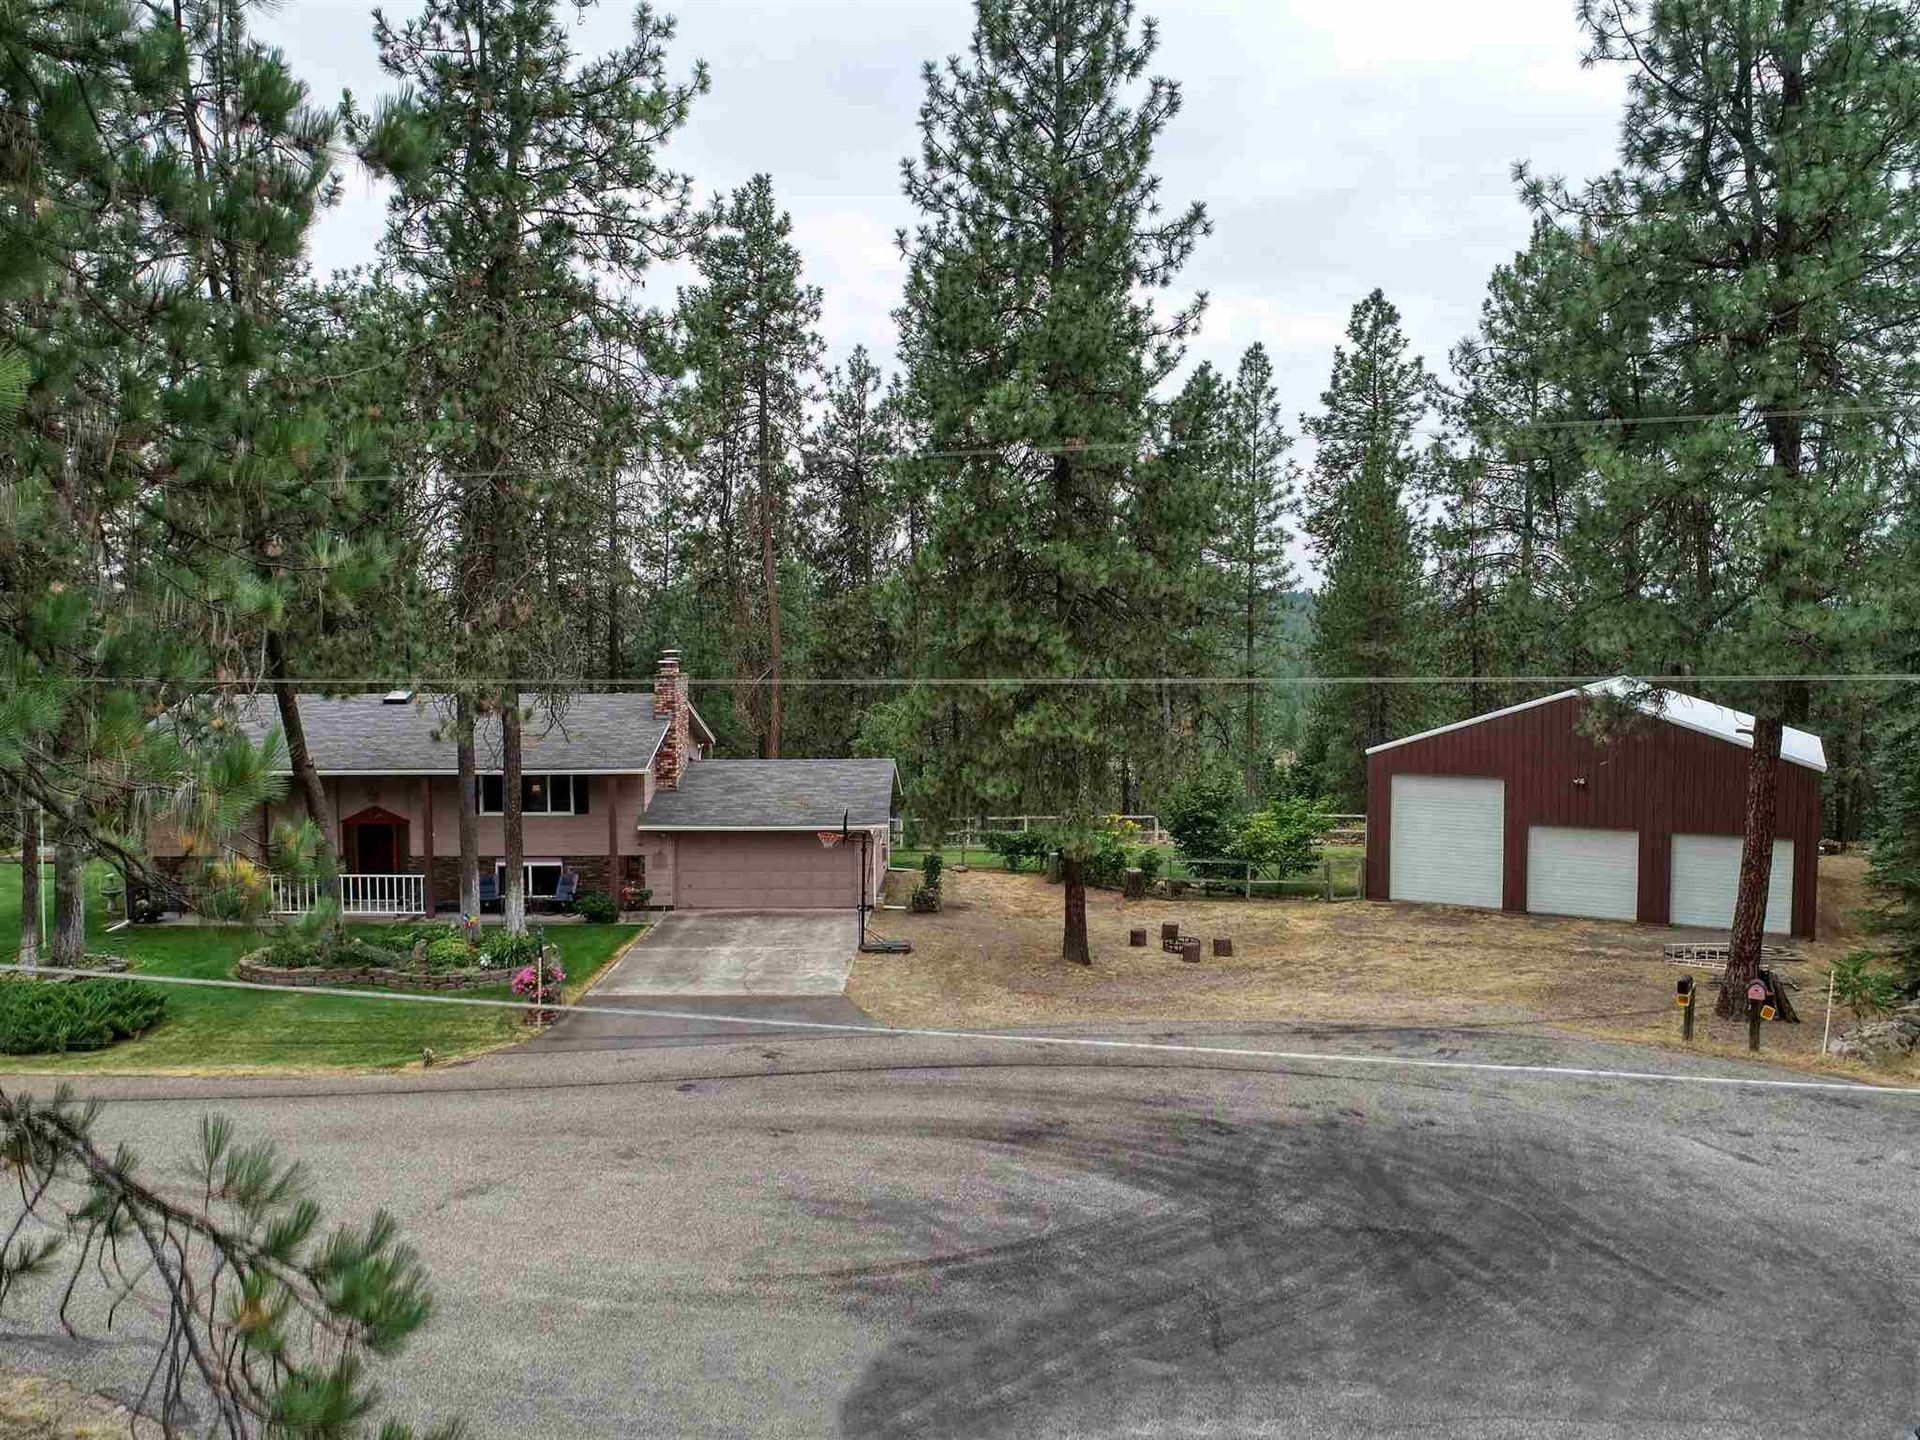 22221 N North Glen Ct, Colbert, WA 99005 - #: 202115384